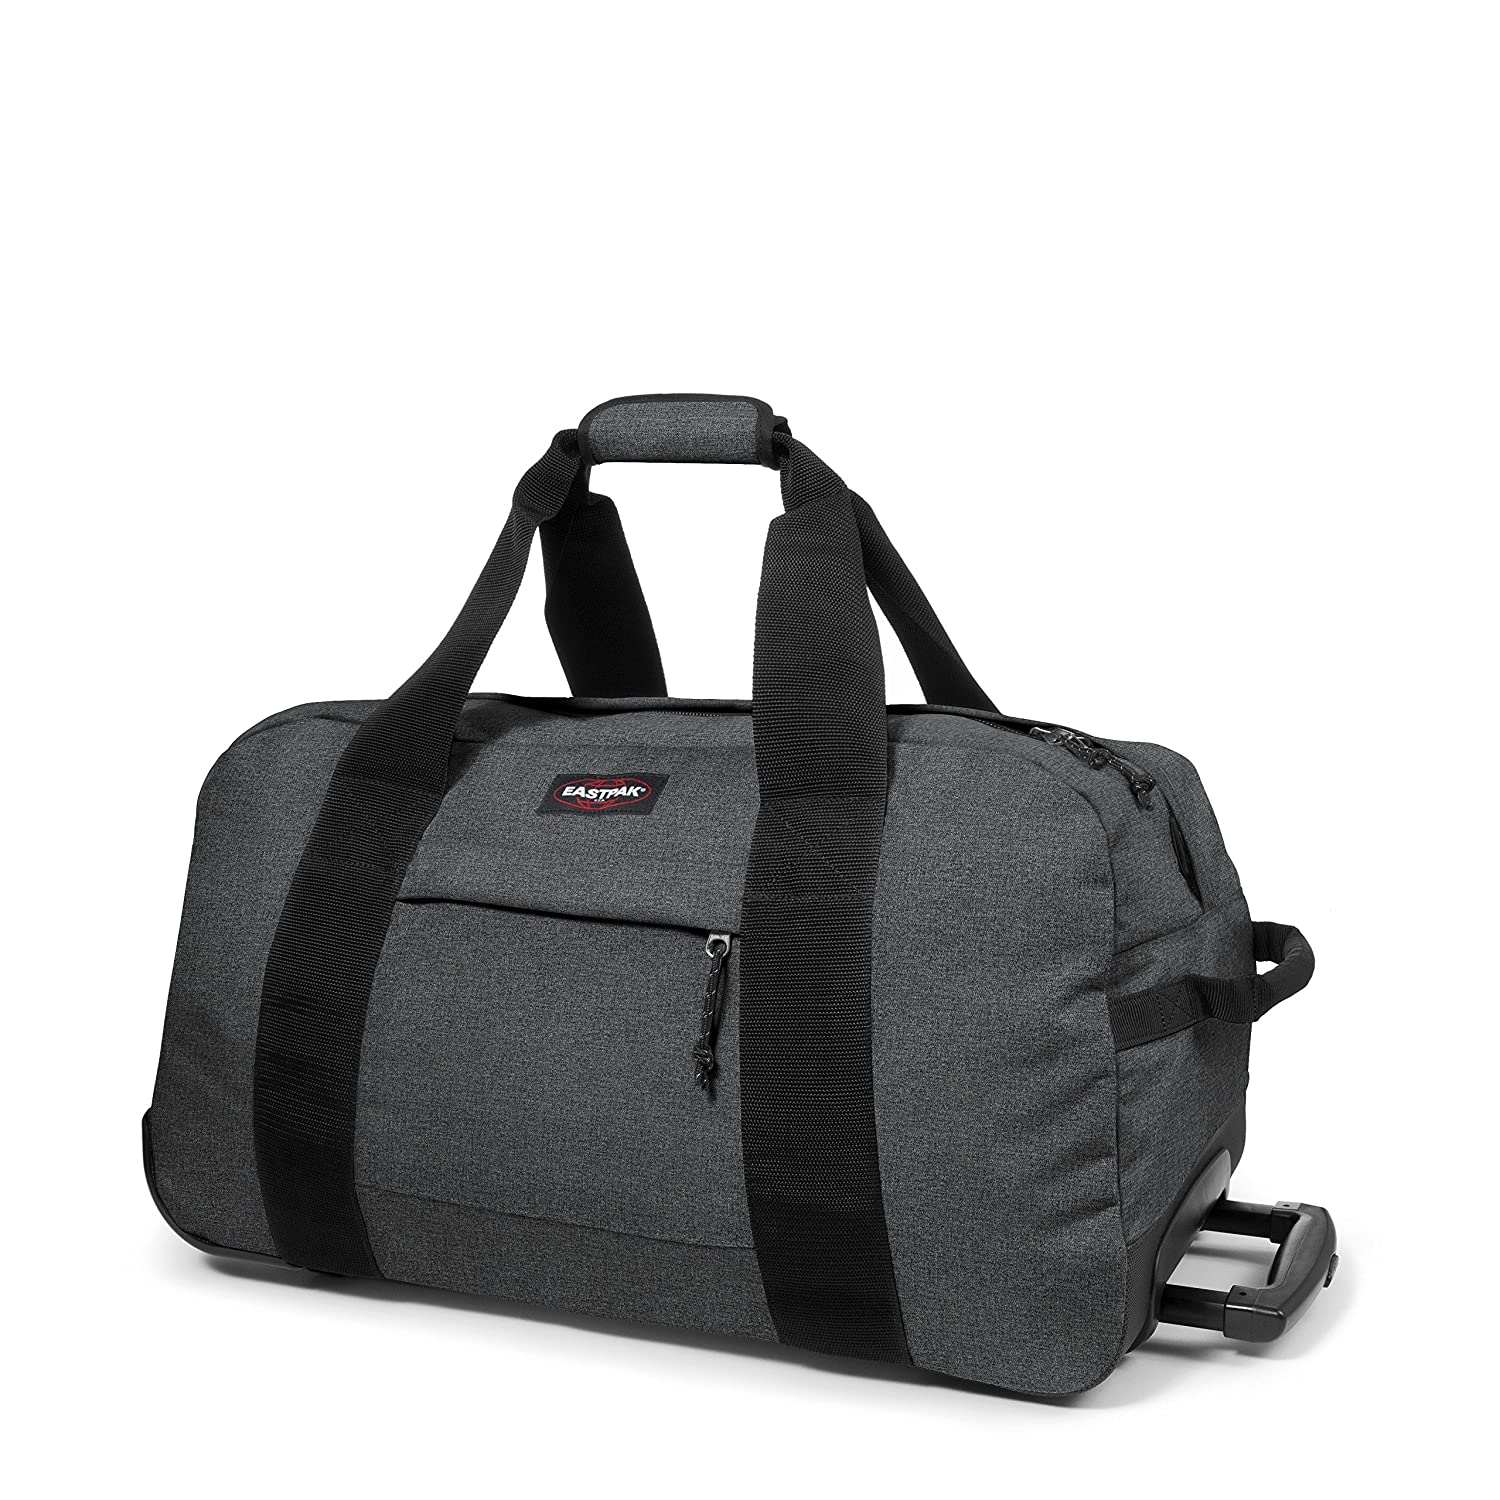 Amazon.com: eastpack contenedor 65black Denim Borsone con ...